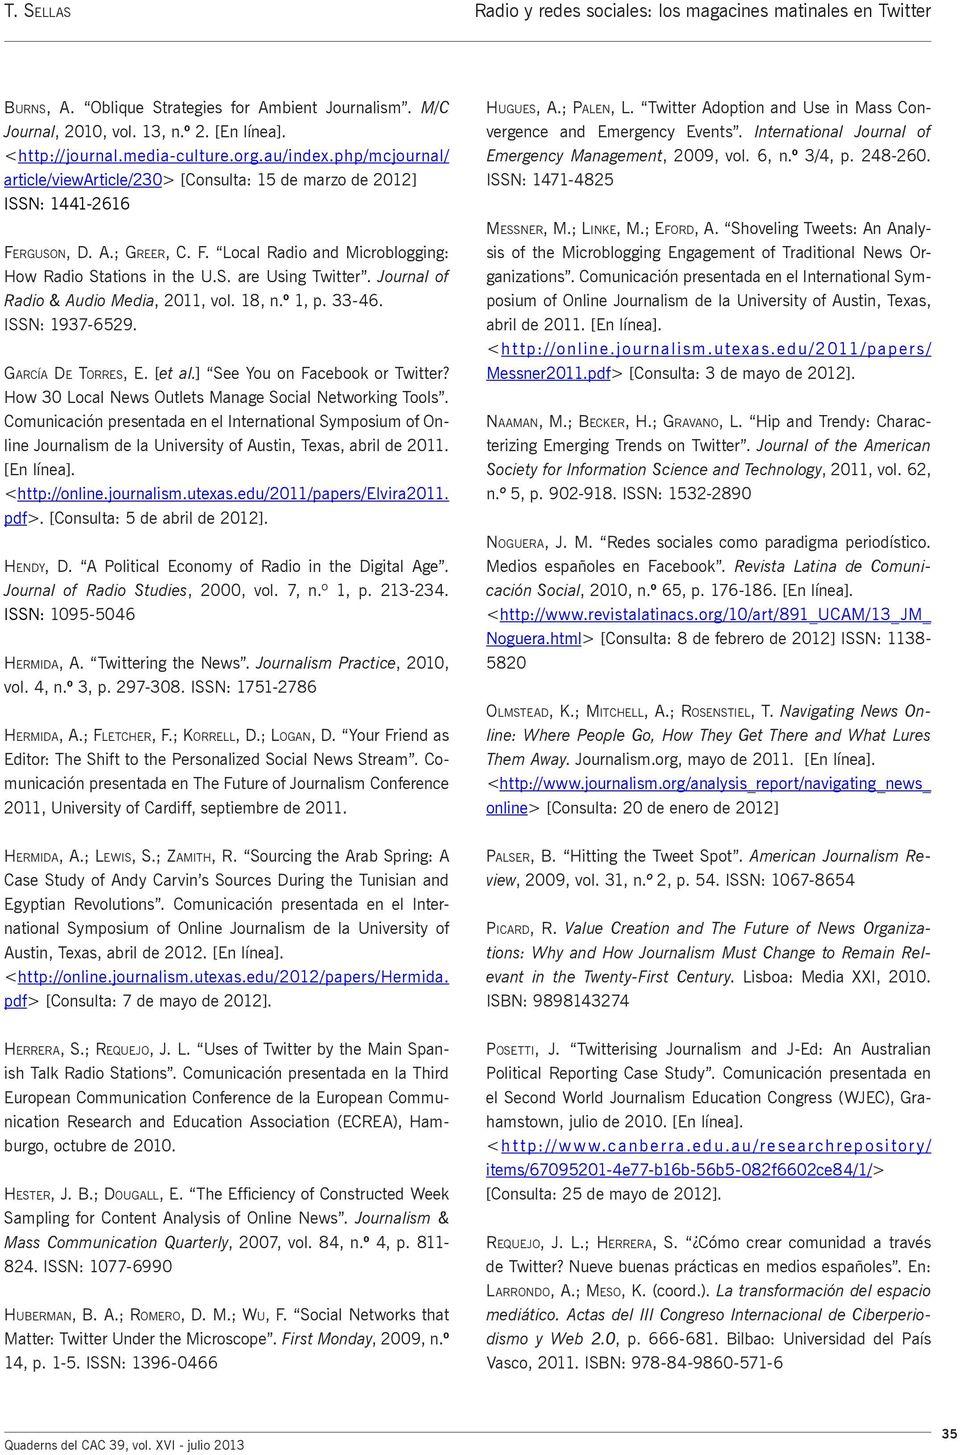 Journal of Radio & Audio Media, 2011, vol. 18, n.º 1, p. 33-46. ISSN: 1937-6529. García De Torres, E. [et al.] See You on Facebook or Twitter? How 30 Local News Outlets Manage Social Networking Tools.